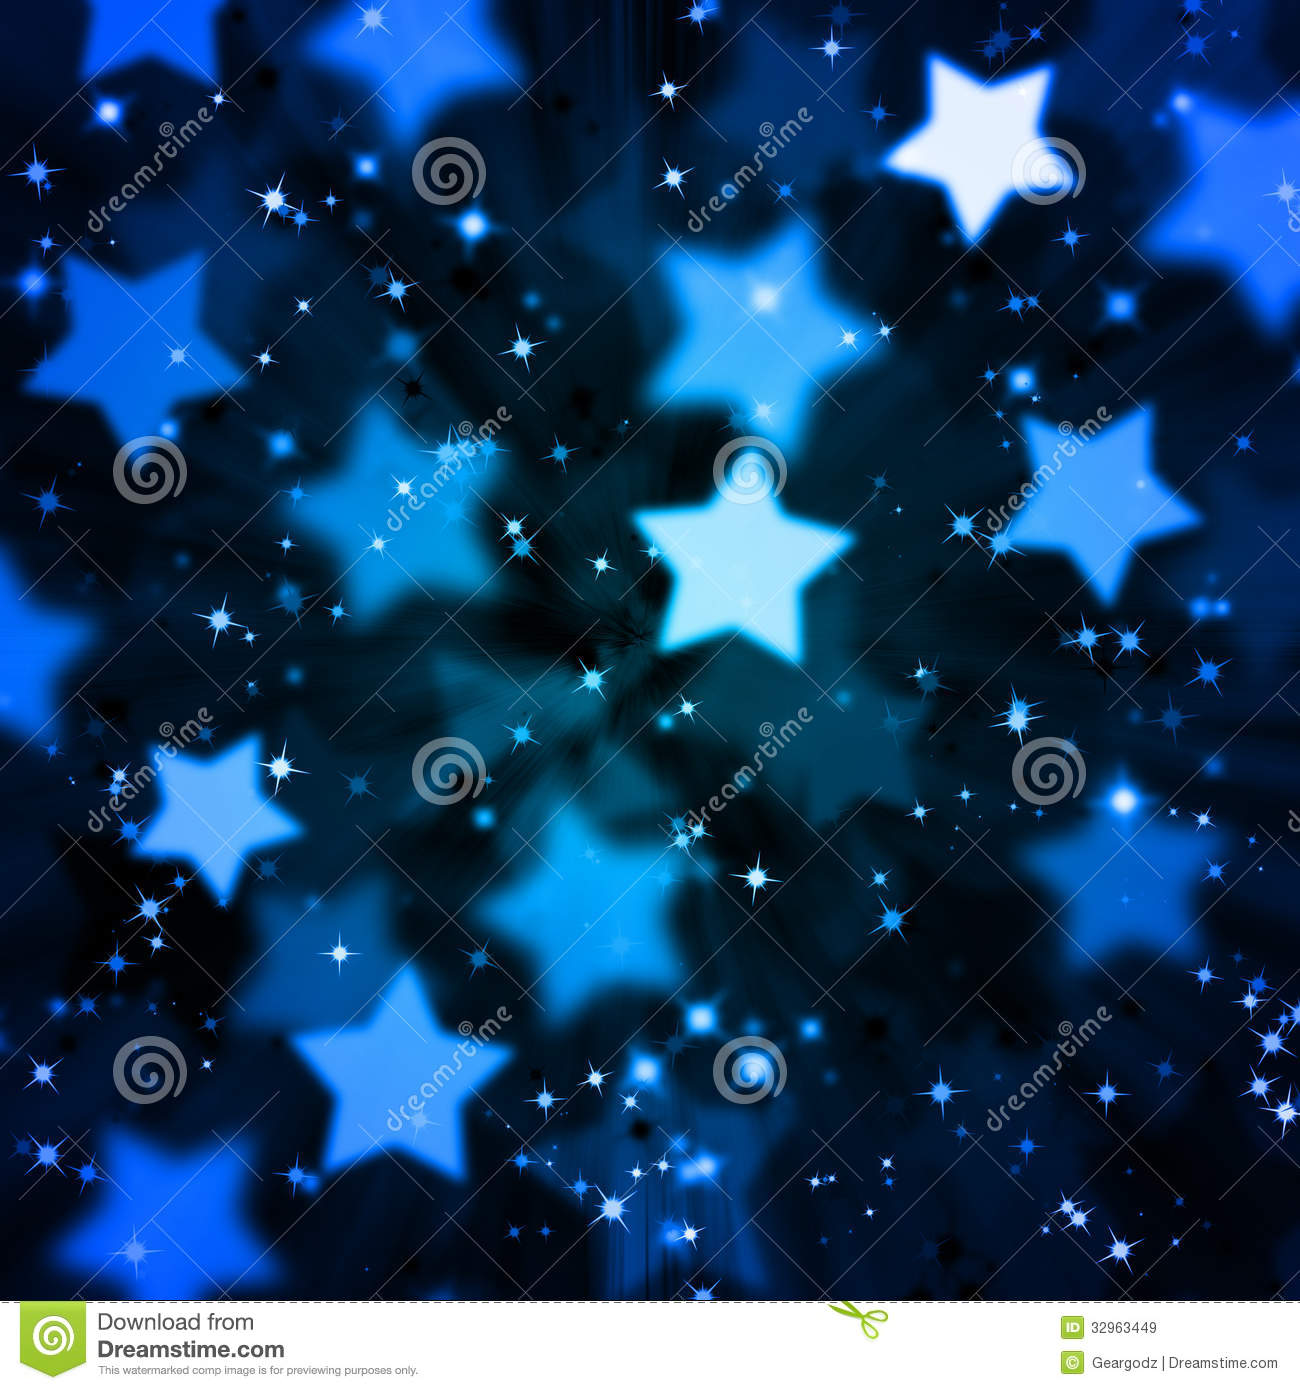 Falling Stars Live Wallpaper Abstract Magic Star Background Stock Illustration